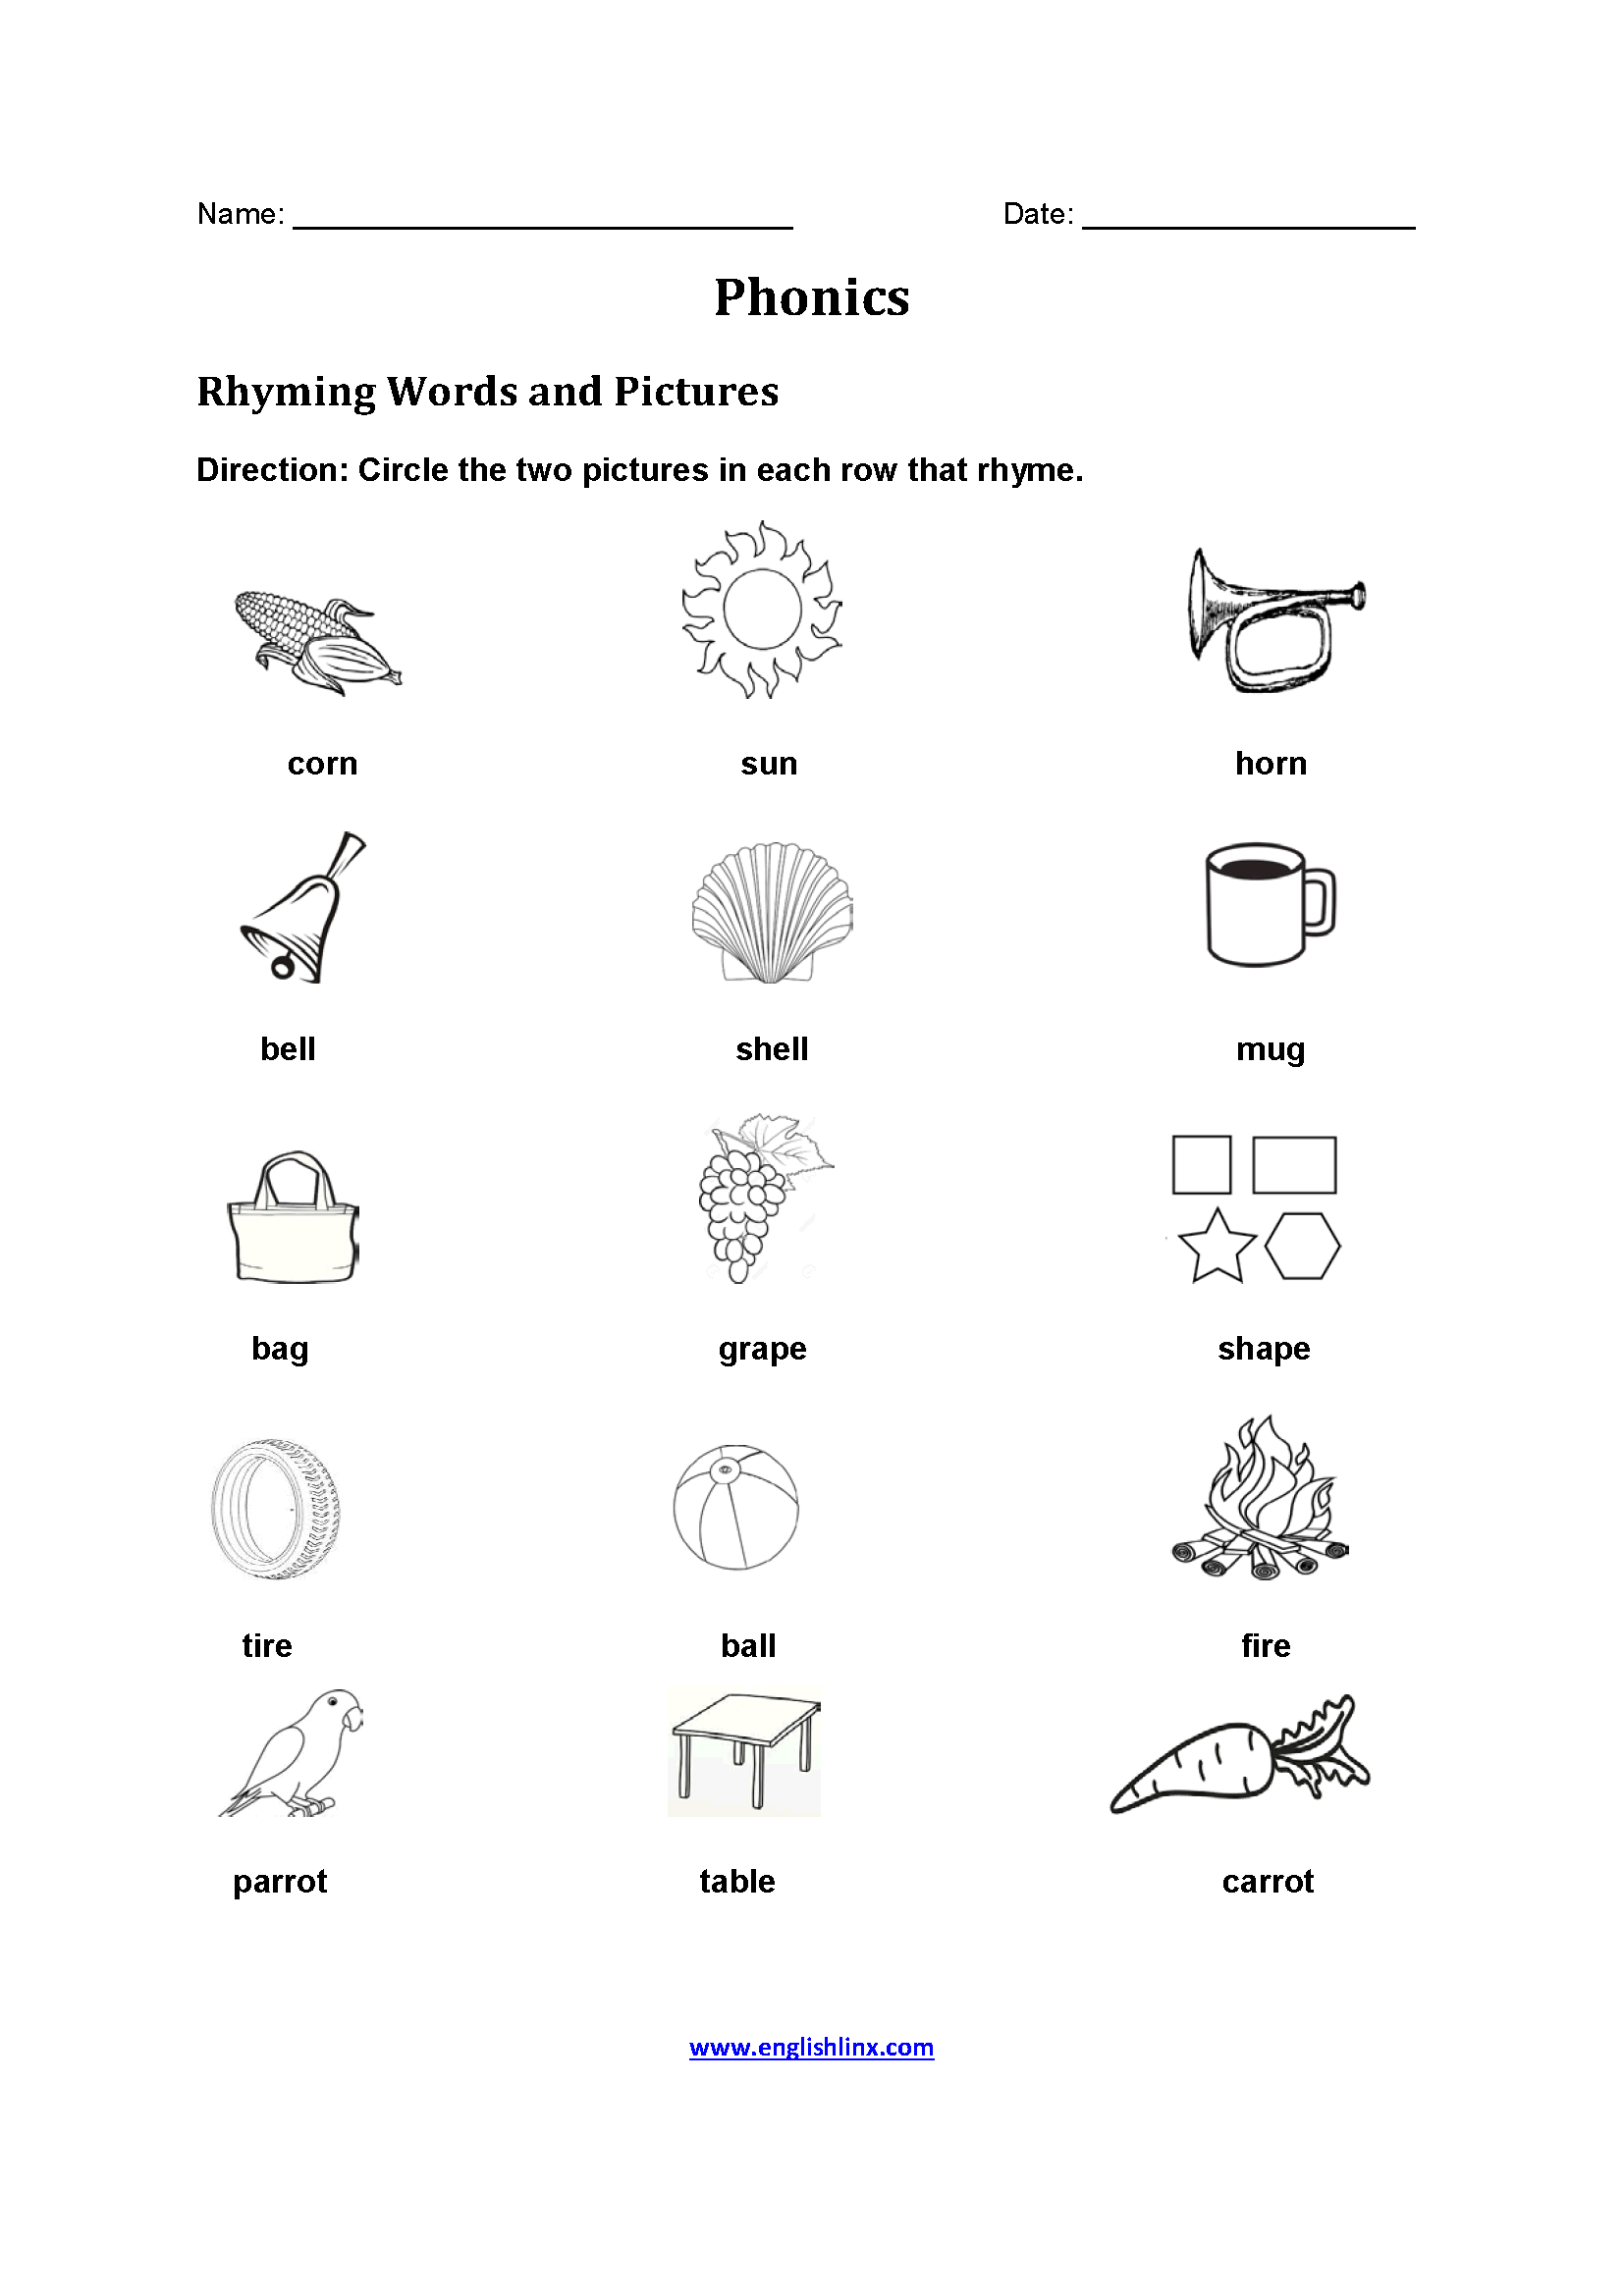 Rhyming Words Phonics Worksheets